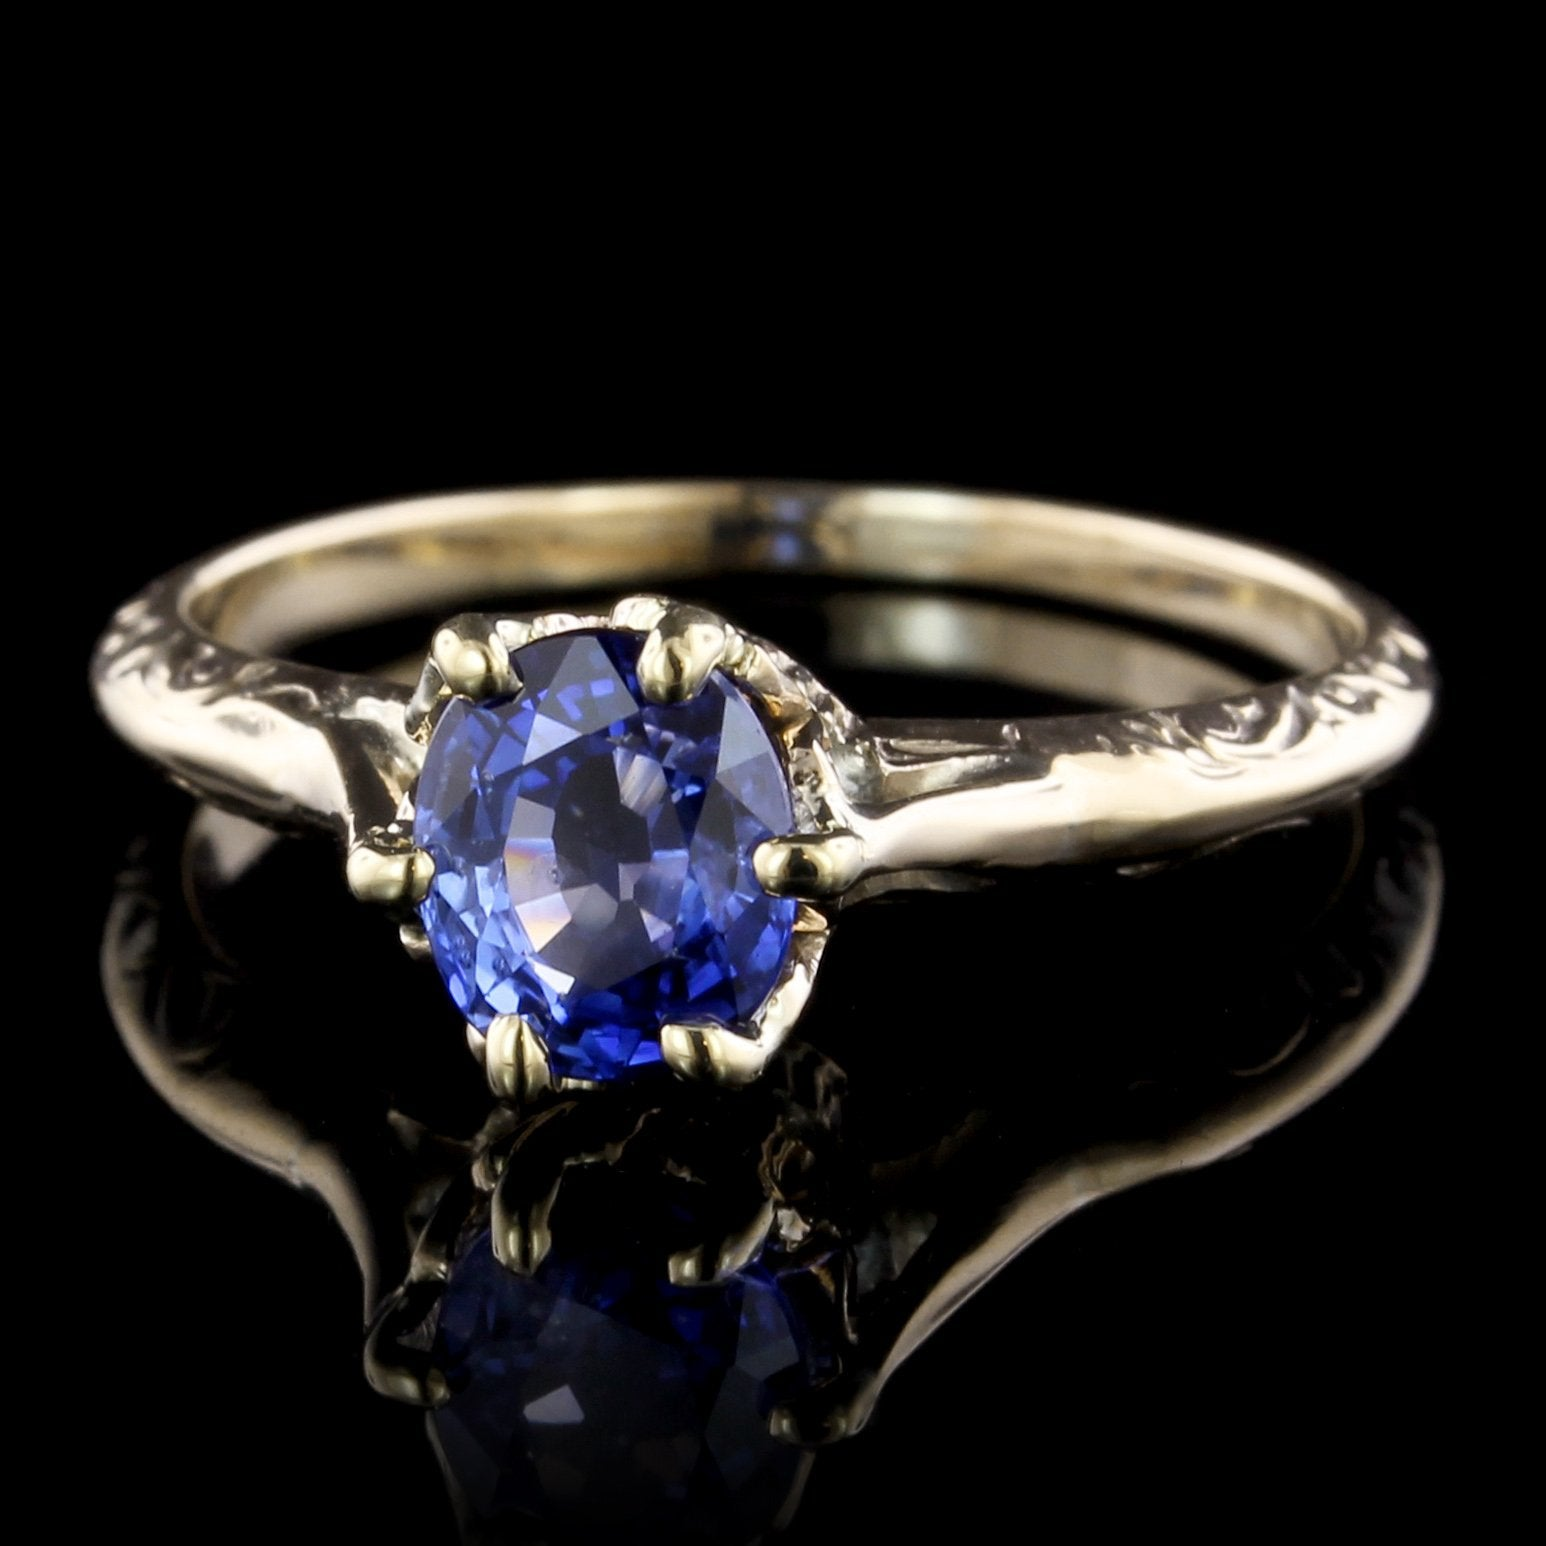 14K Yellow Gold Estate Sapphire Ring